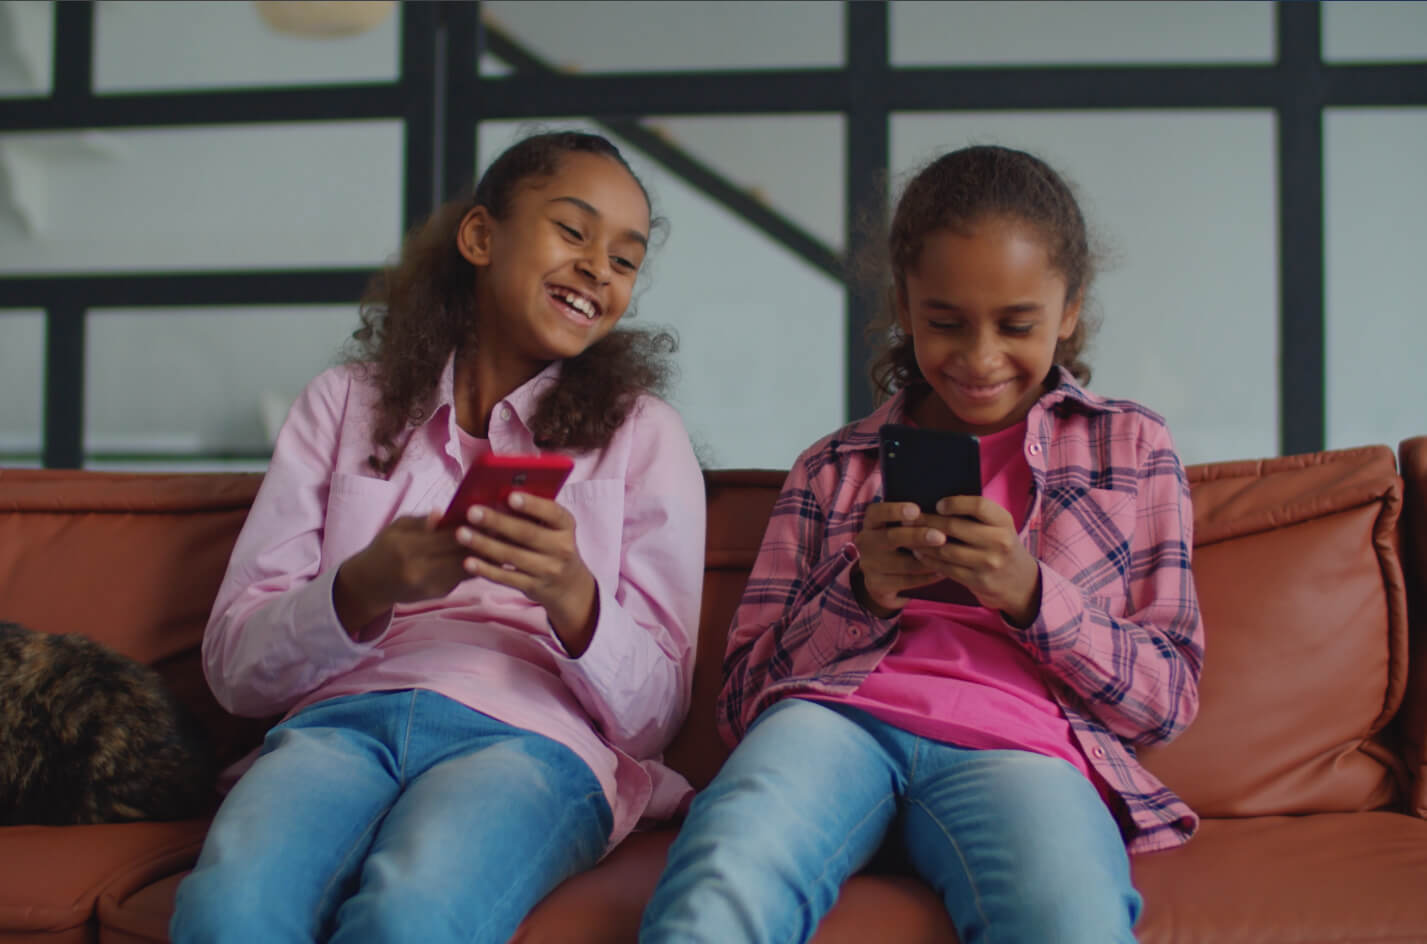 Two kids using the Mydoh money app together